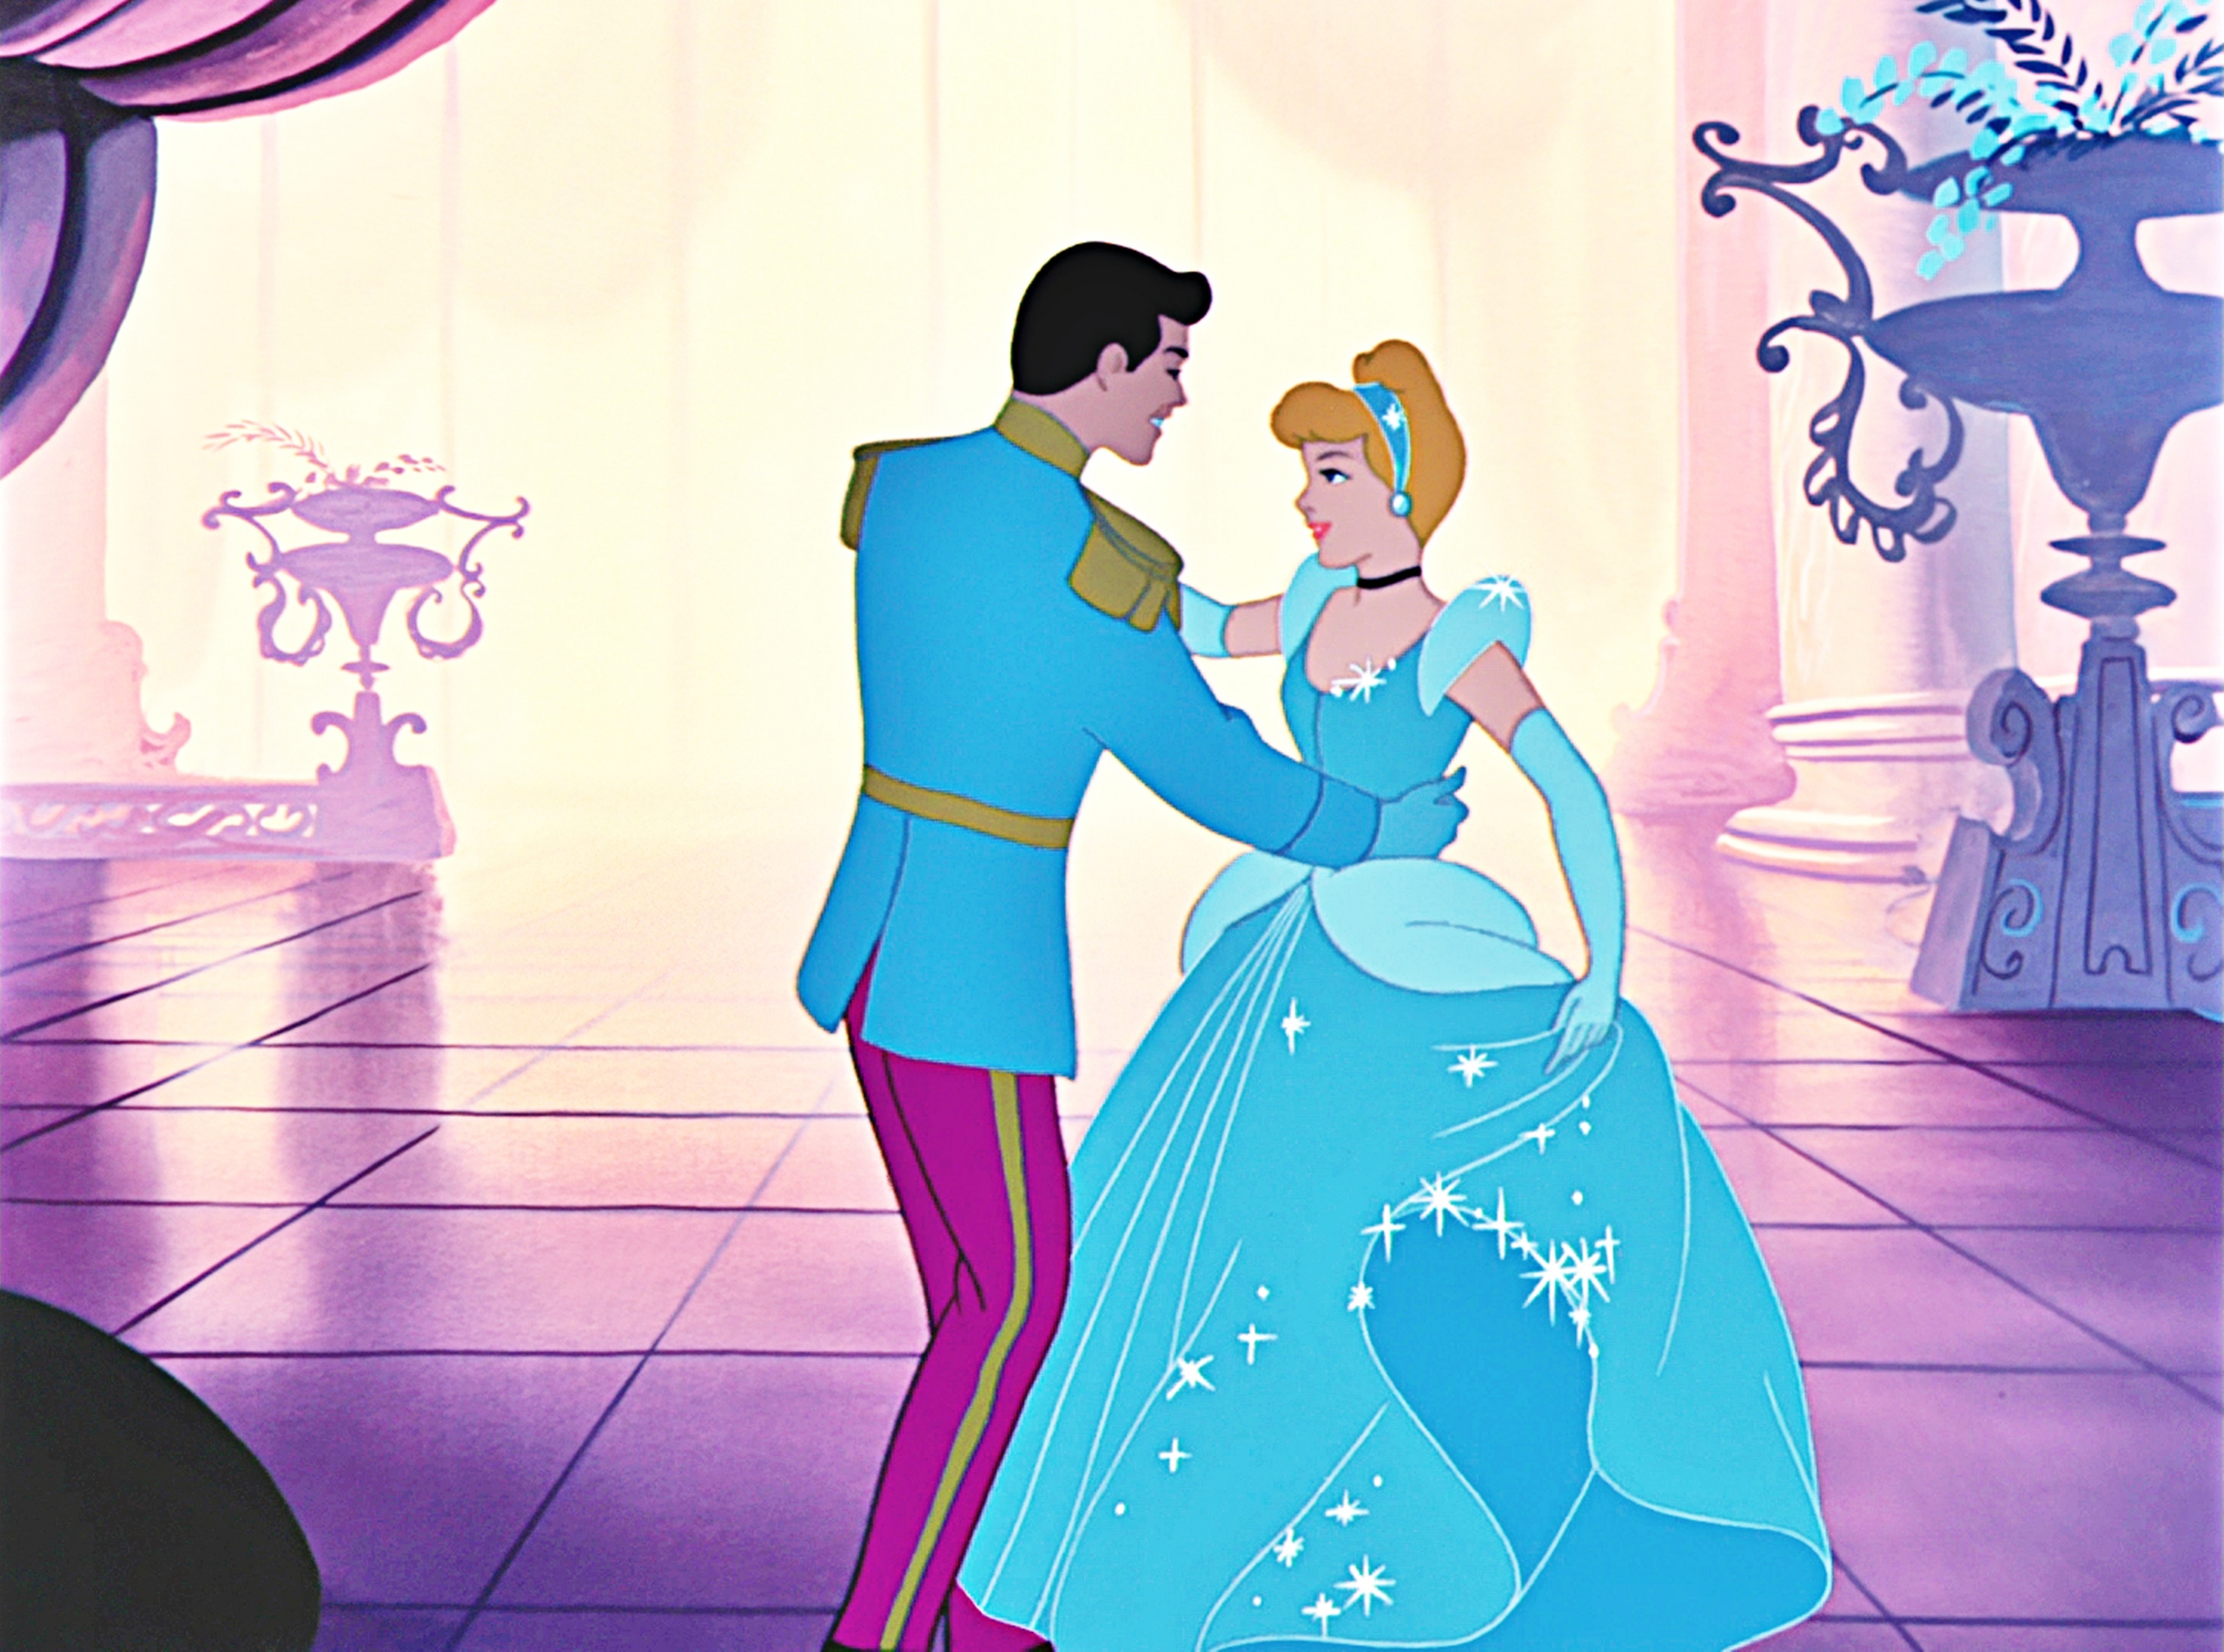 https://i1.wp.com/images5.fanpop.com/image/photos/32000000/Walt-Disney-Screencaps-Prince-Charming-Cinderella-cinderella-32064794-2560-1902.jpg